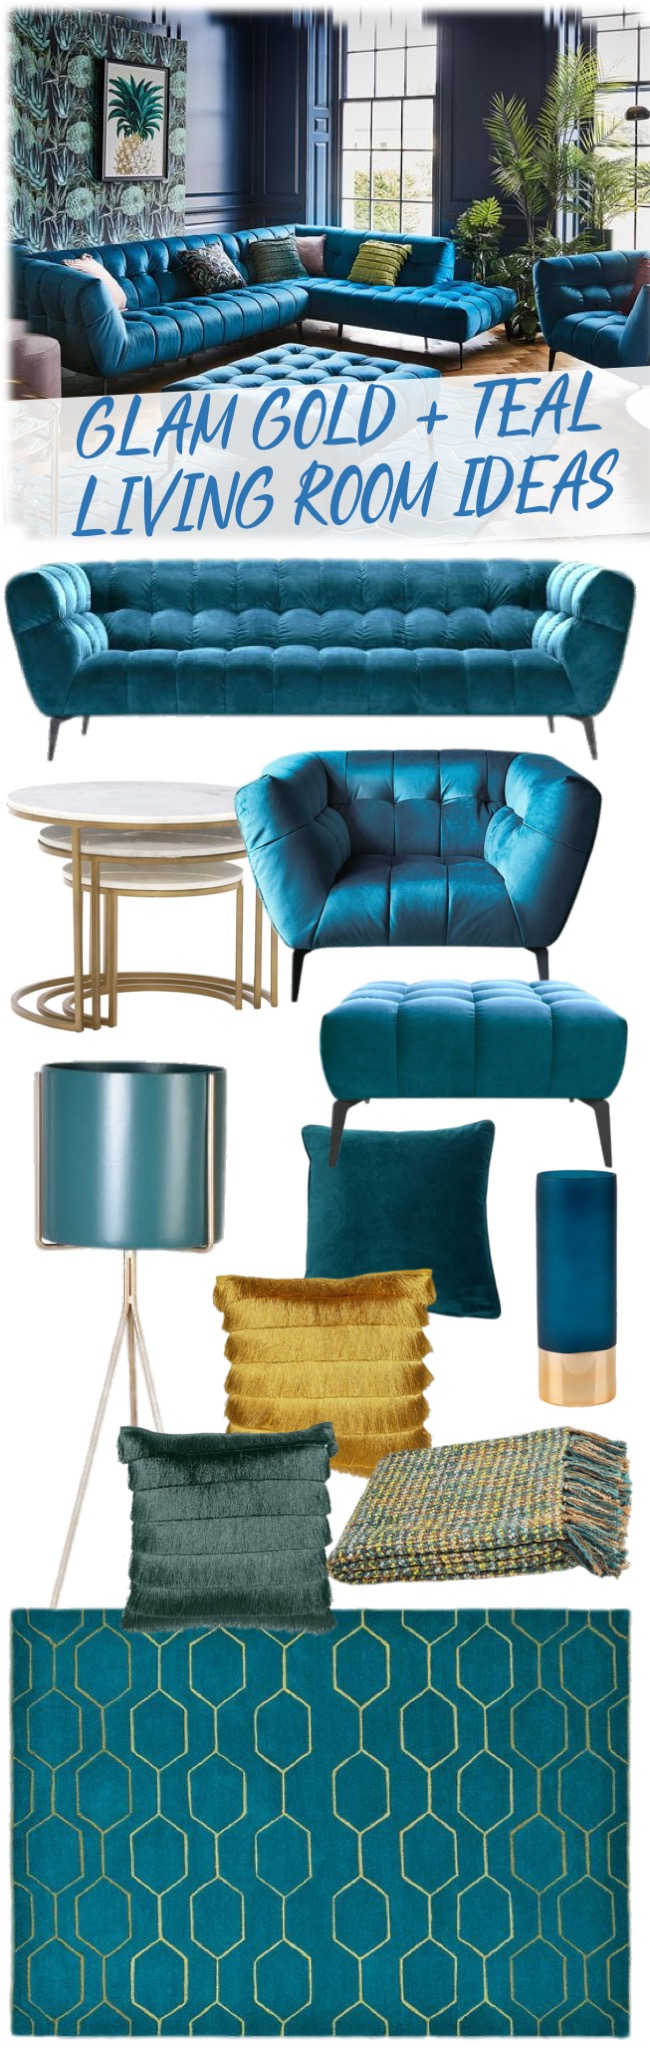 glam gold and teal living room ideas mood board